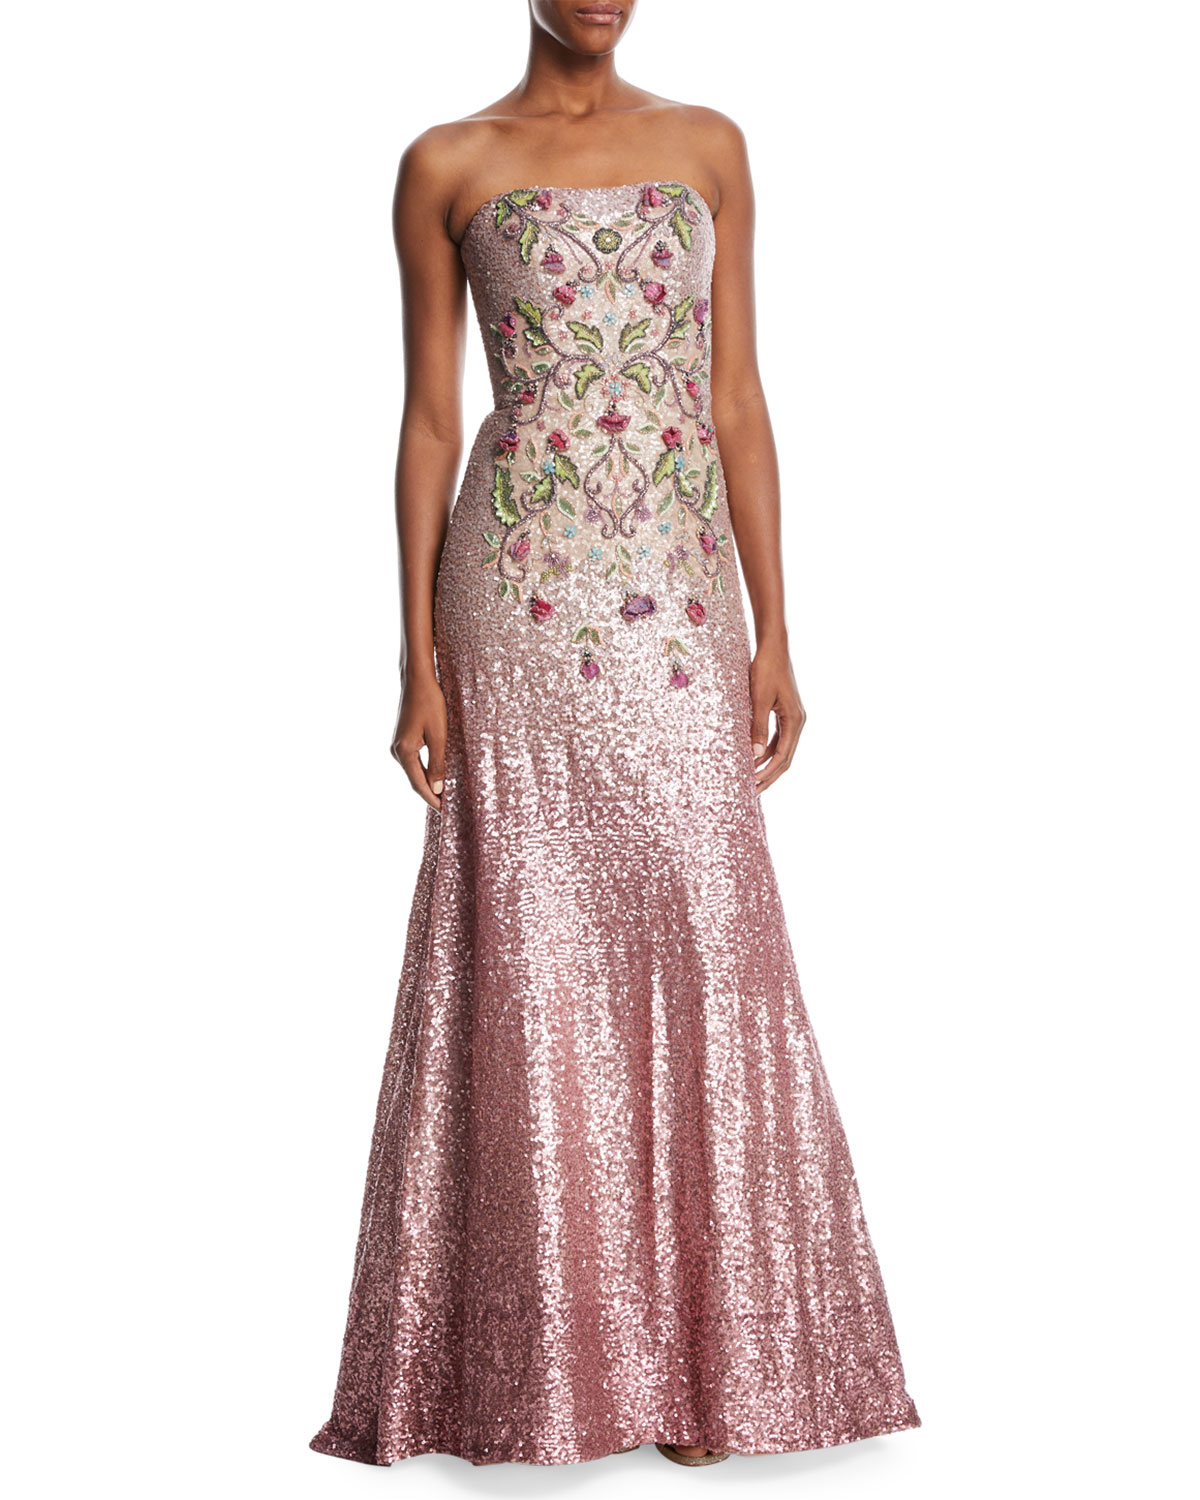 Theia Strapless Ombré Sequin Gown w/ Beaded Bodice | Neiman Marcus